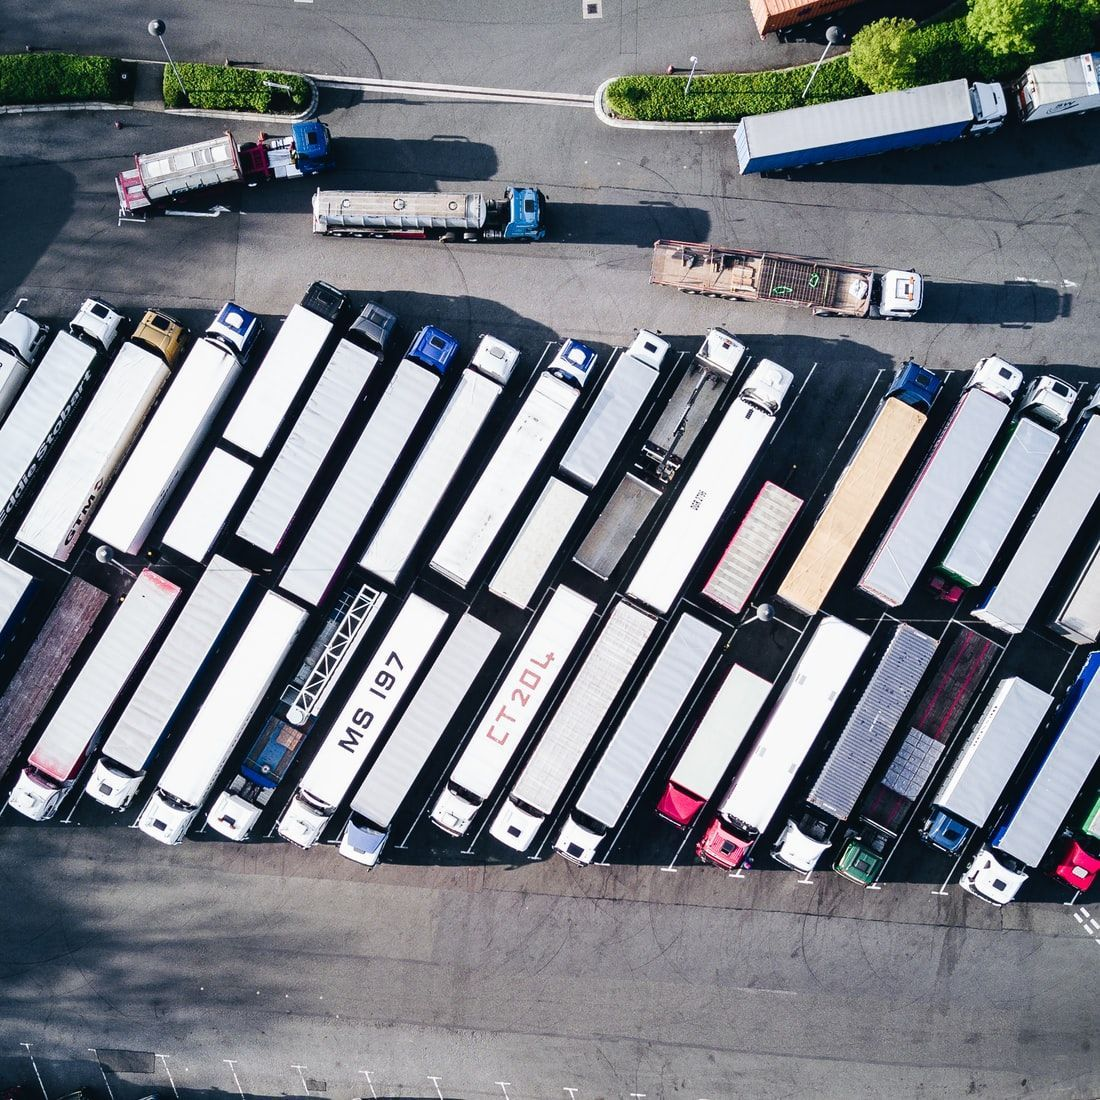 the truck market